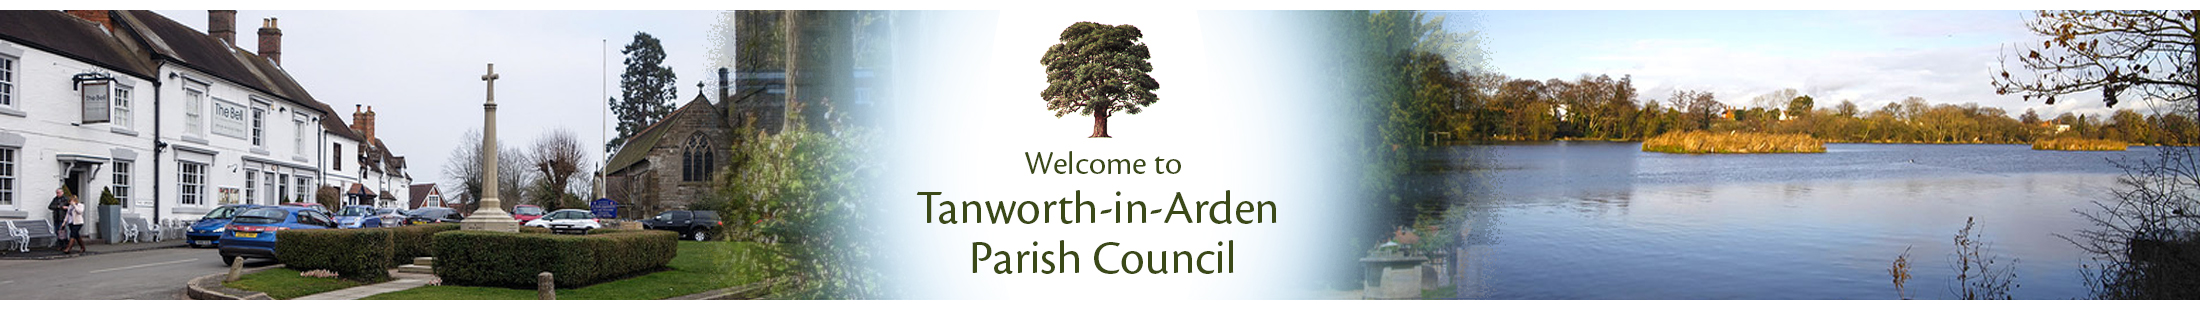 Header Image for Tanworth in Arden